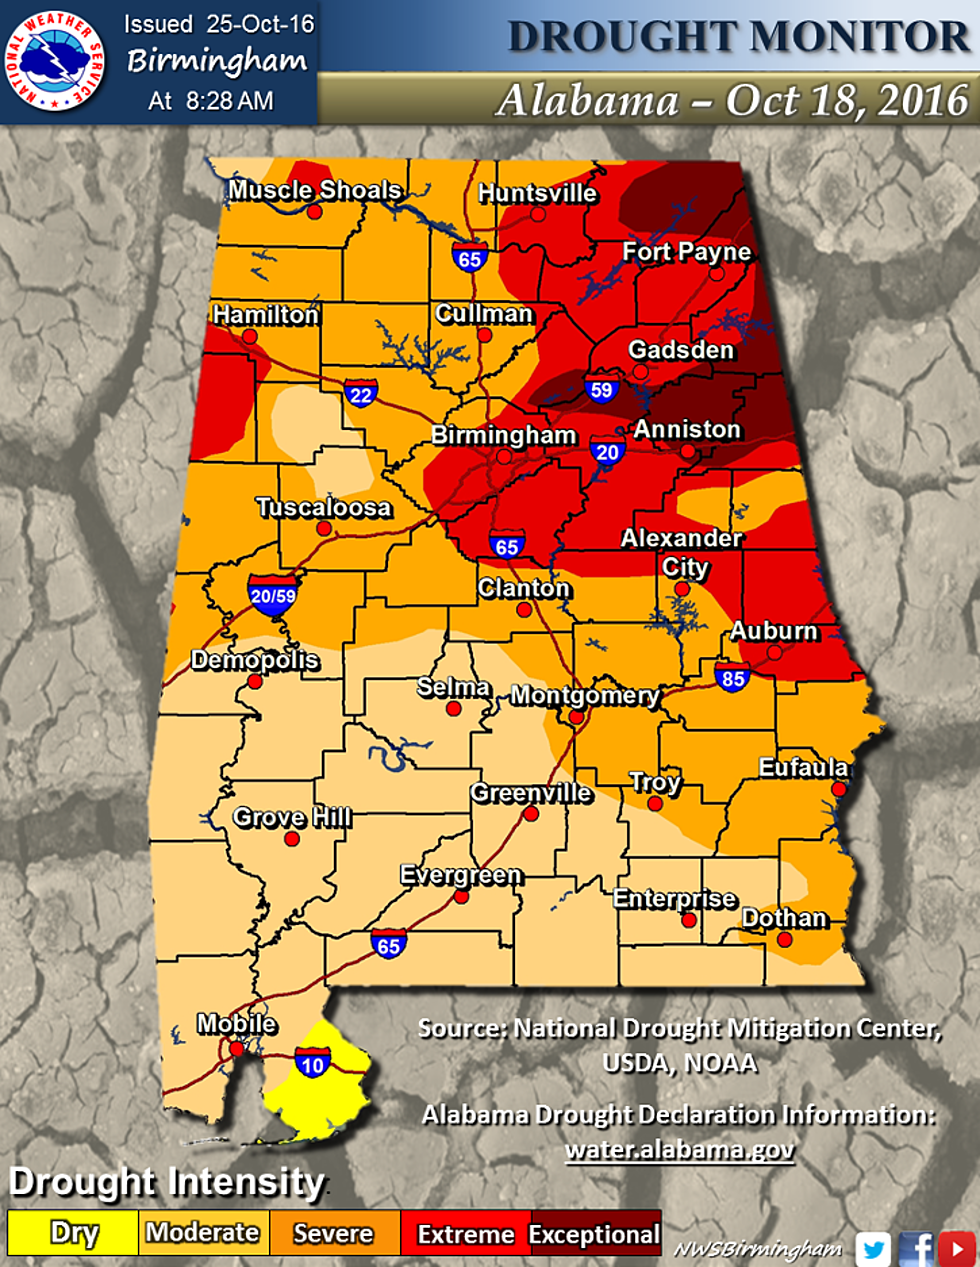 Severe Drought Conditions Continue In Tuscaloosa County and